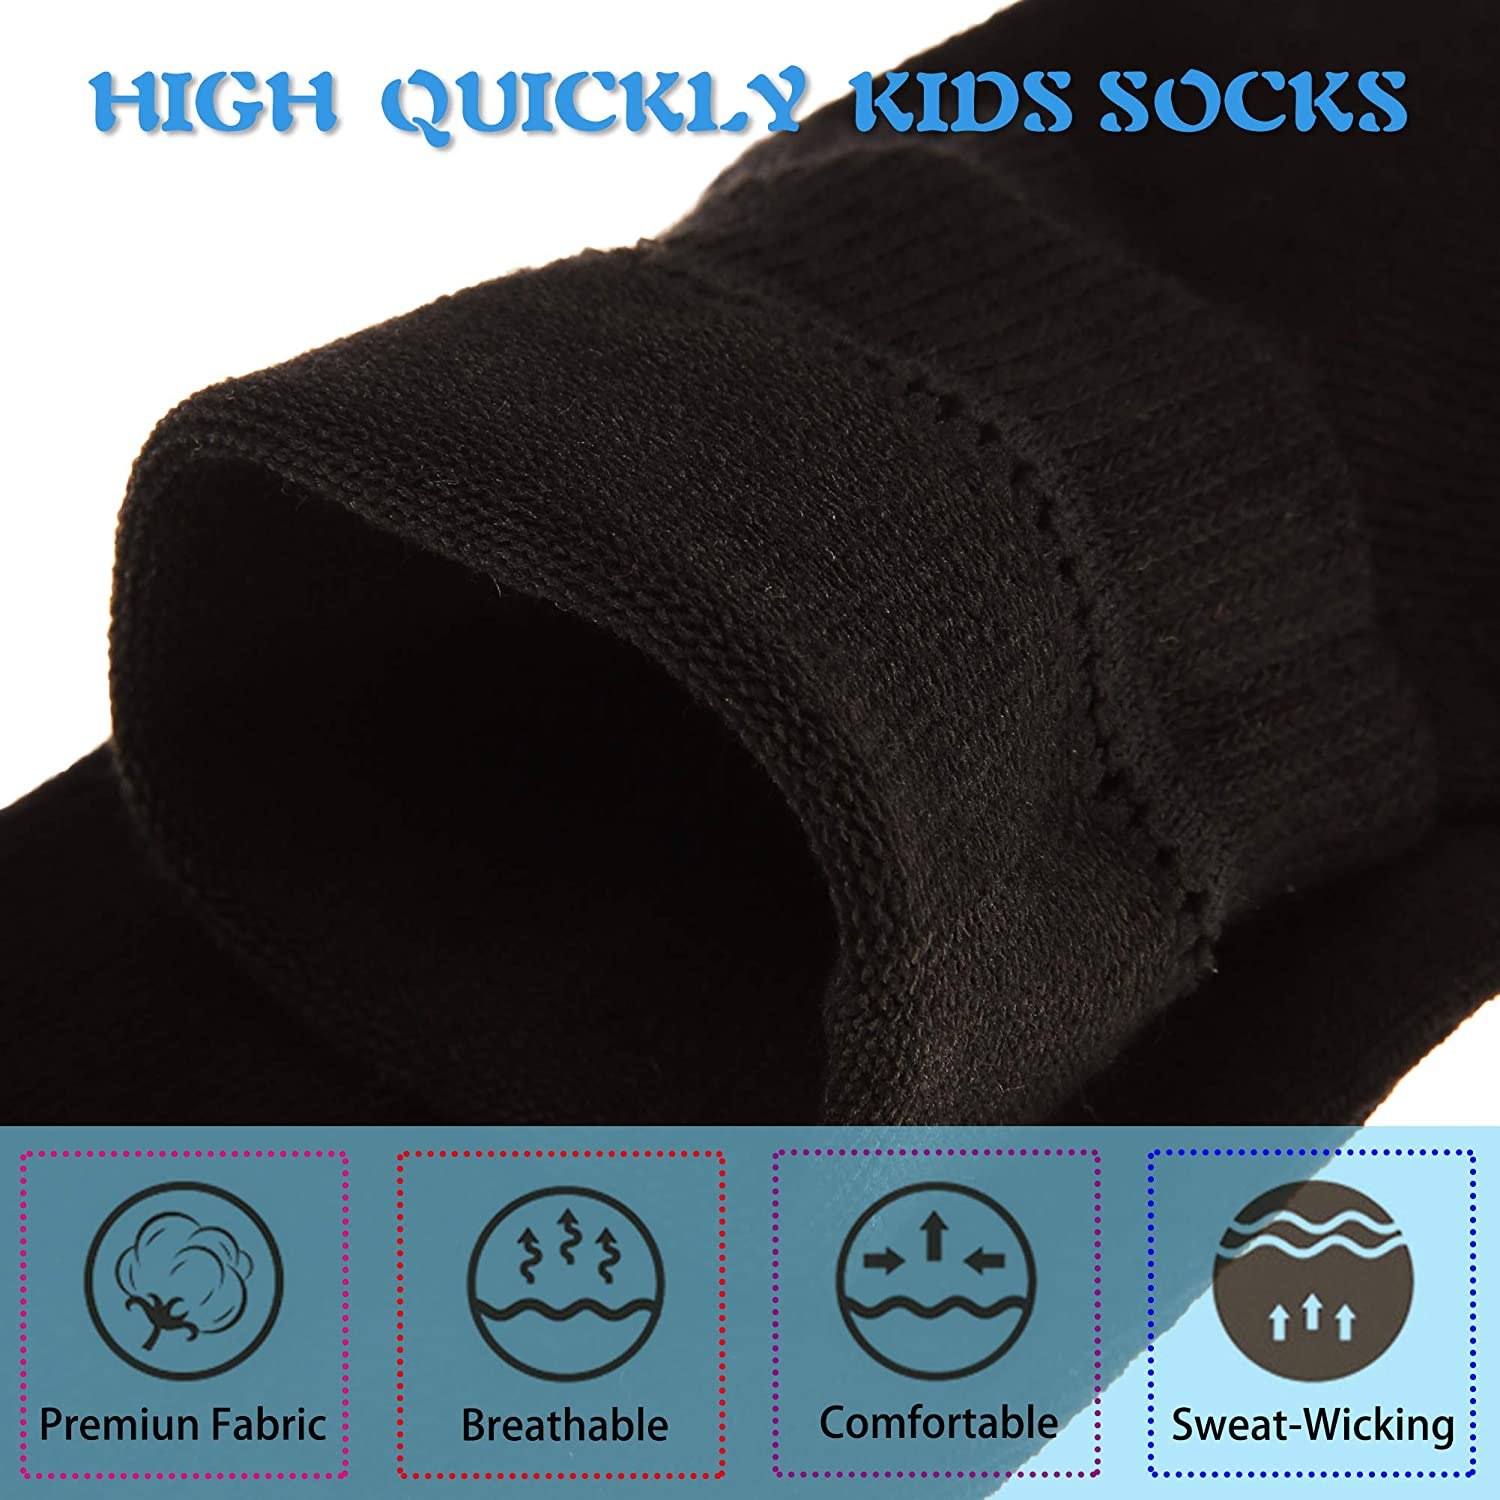 Baby Boys Girls Socks Little Kids Toddlers Casual School Sports Soft Breathable Cotton Crew Socks